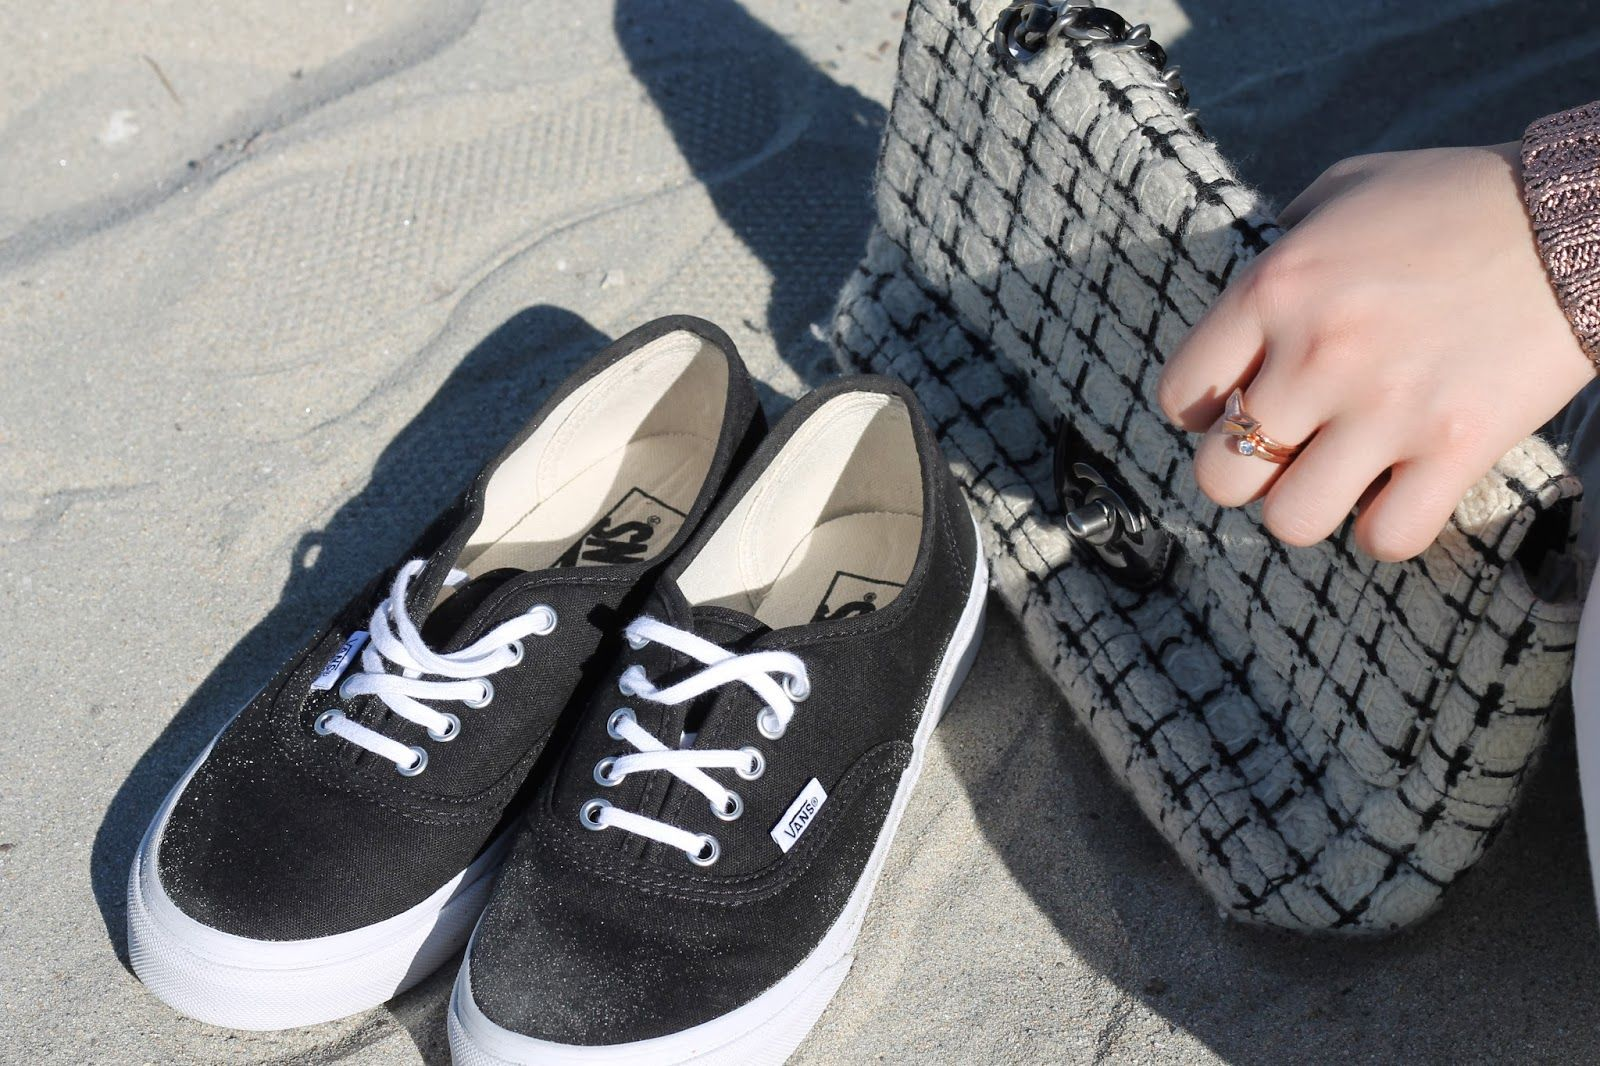 Vans & Chanel two timeless classics